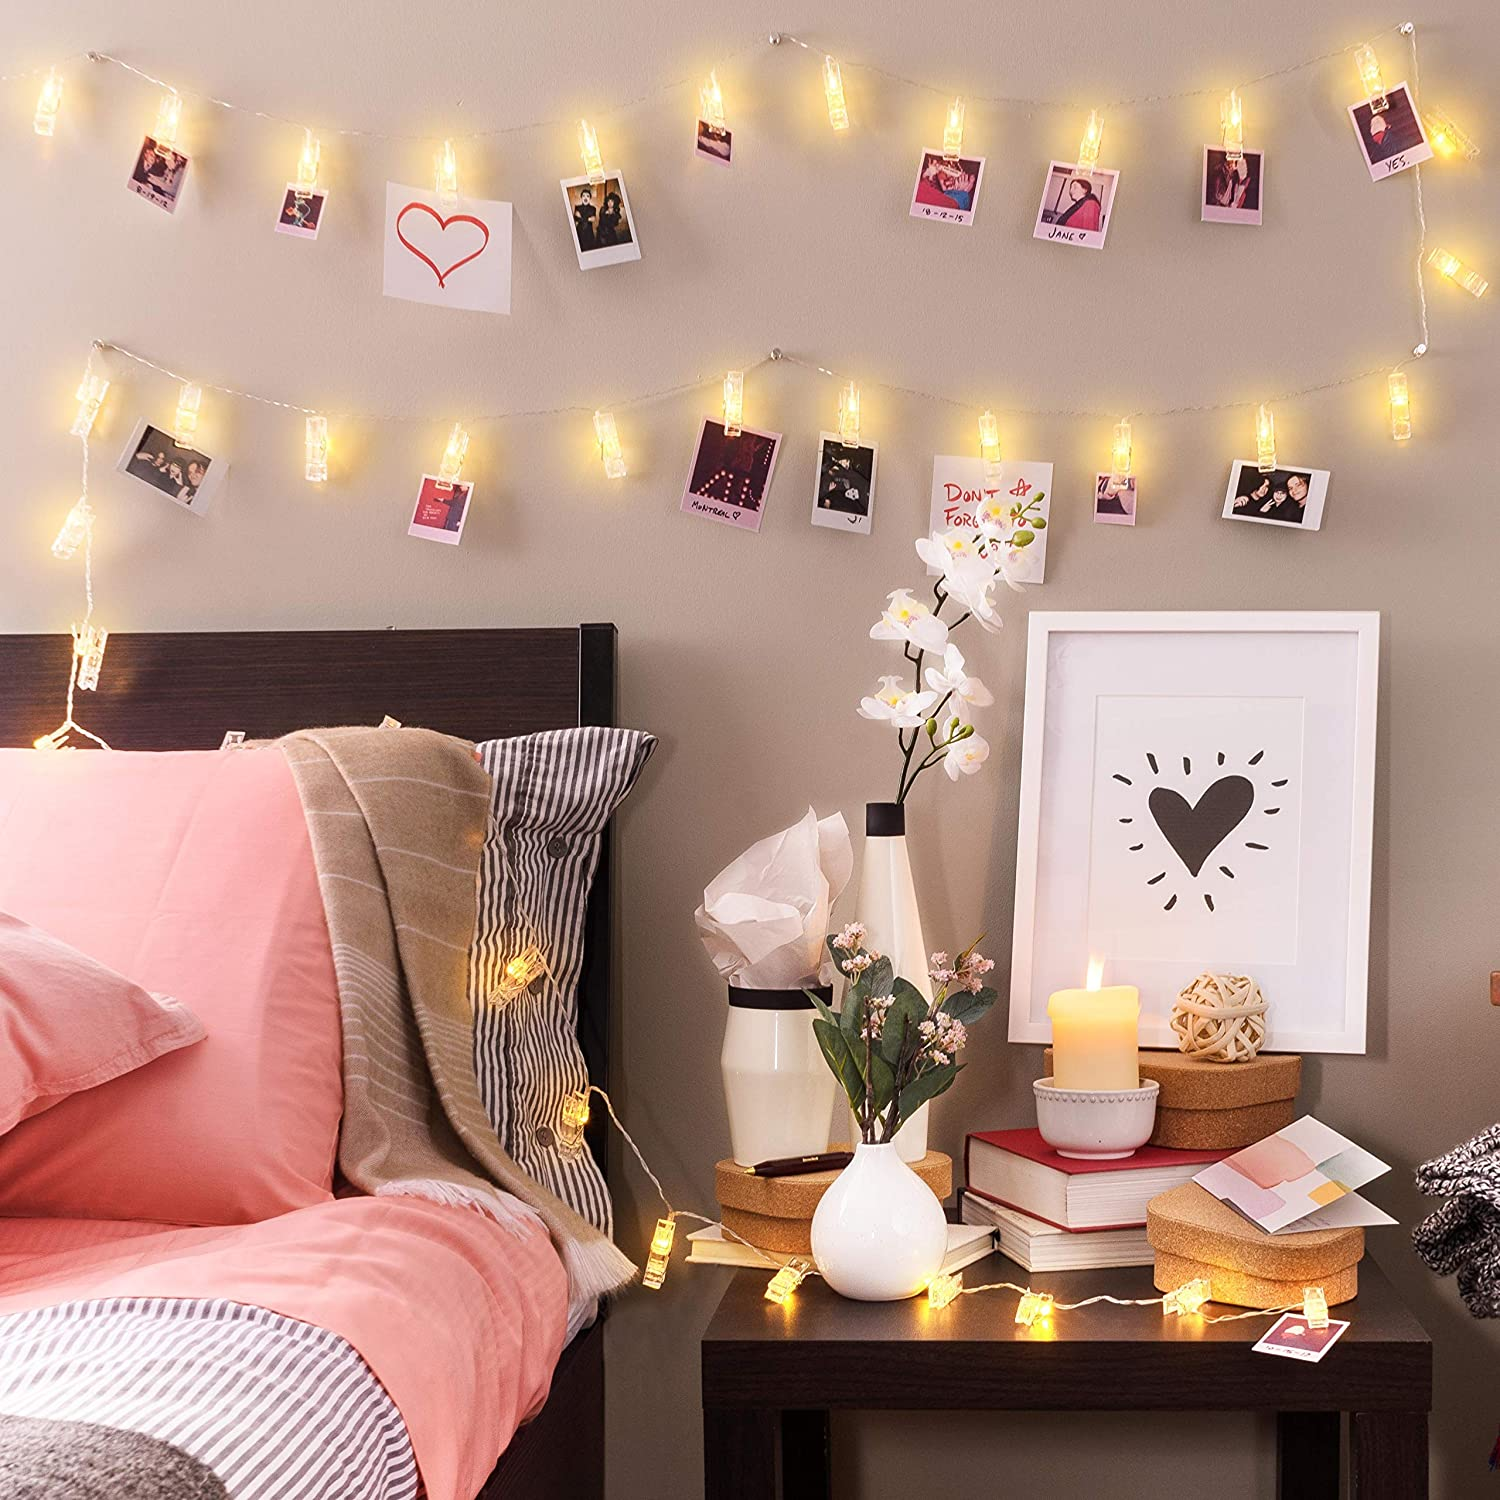 gifts-for-13-year-old-girl-photo-string-lights